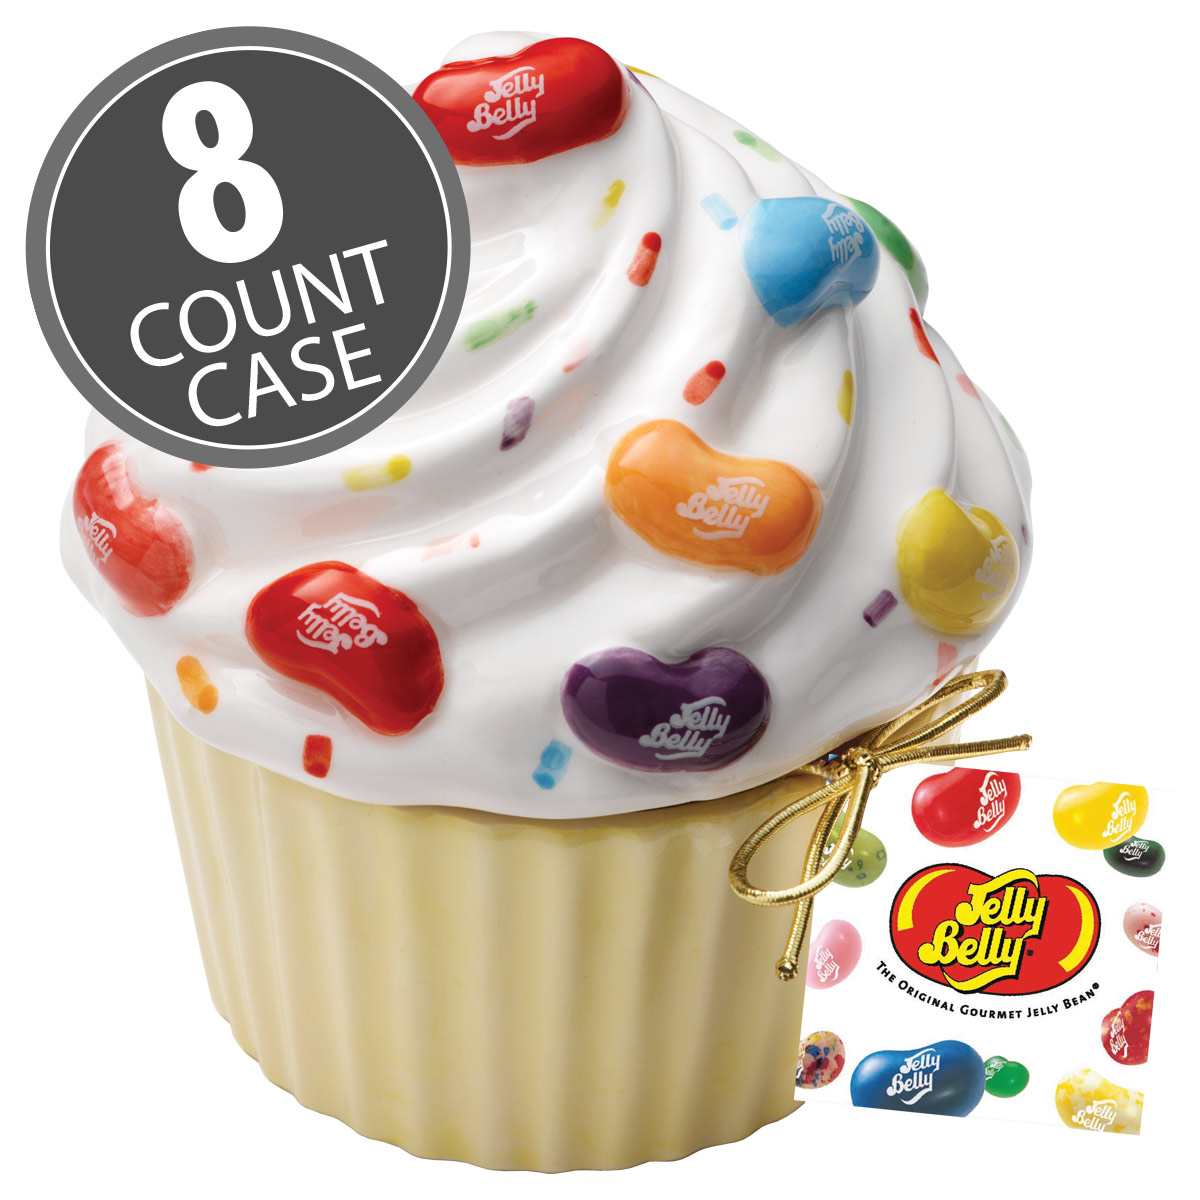 Ceramic Cupcake Candy Dish with 20 Assorted Jelly Bean Flavors Mix - 8-Count Case